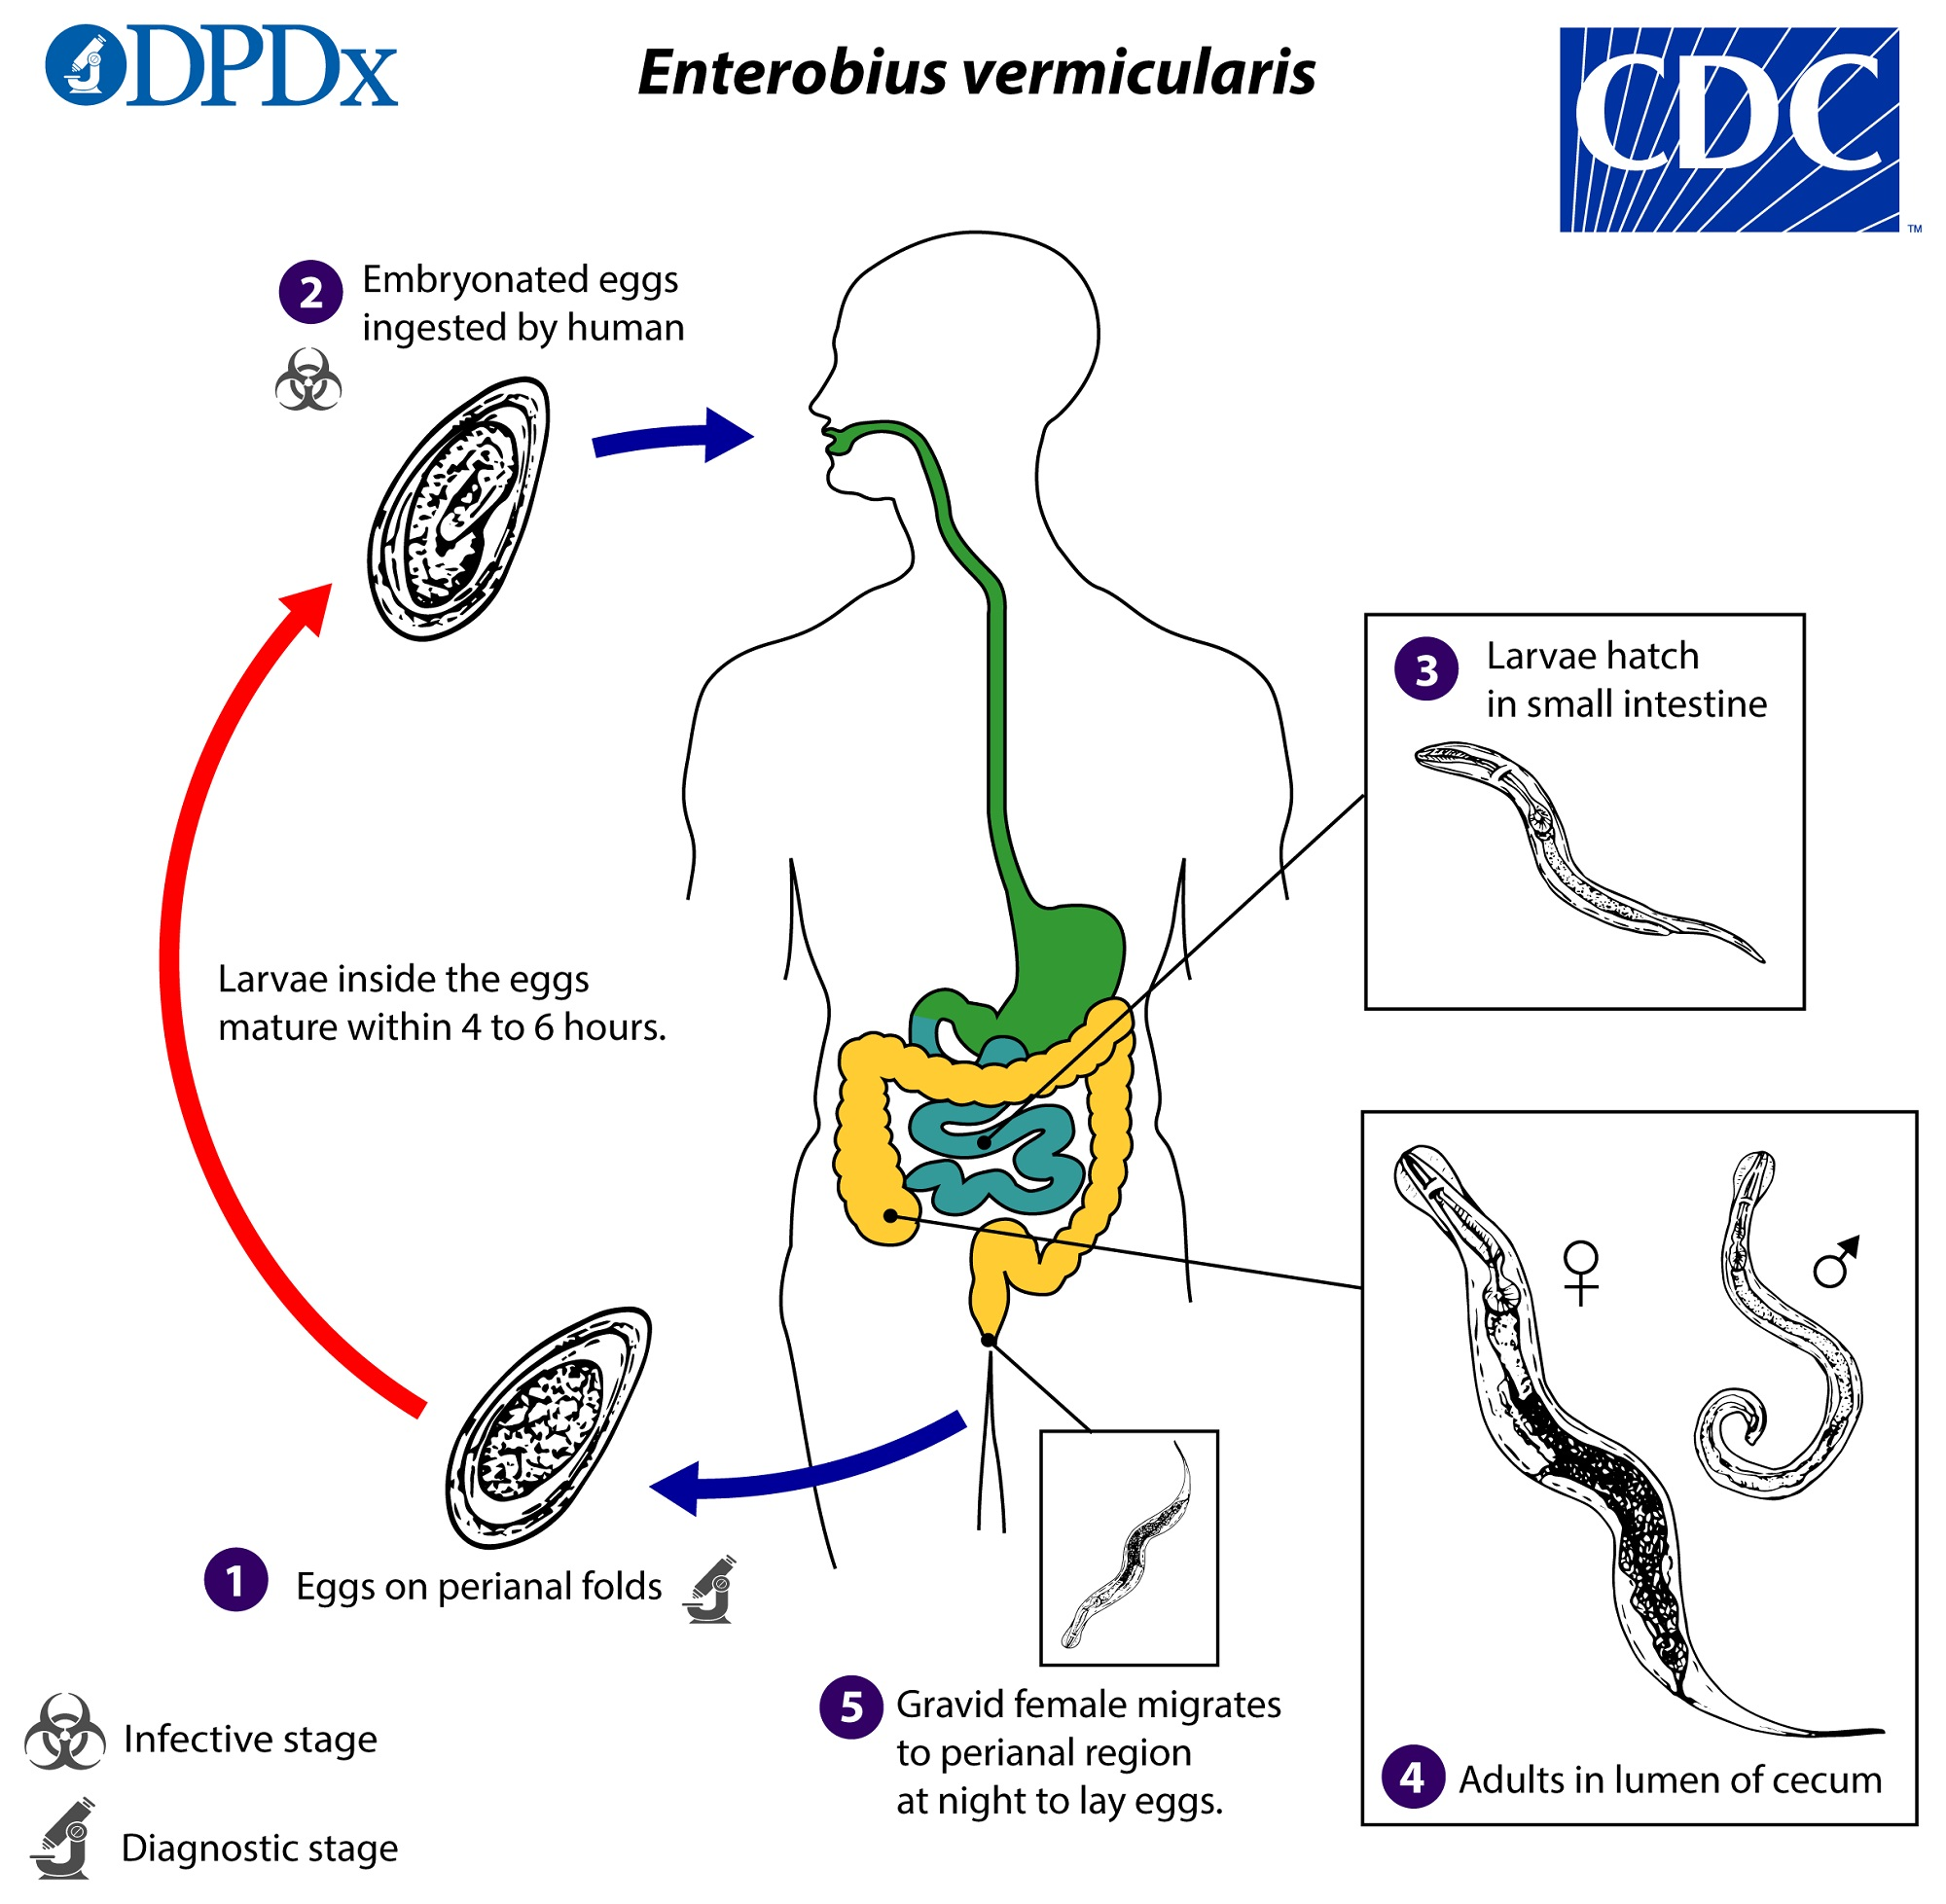 treatment of oxyuris vermicularis